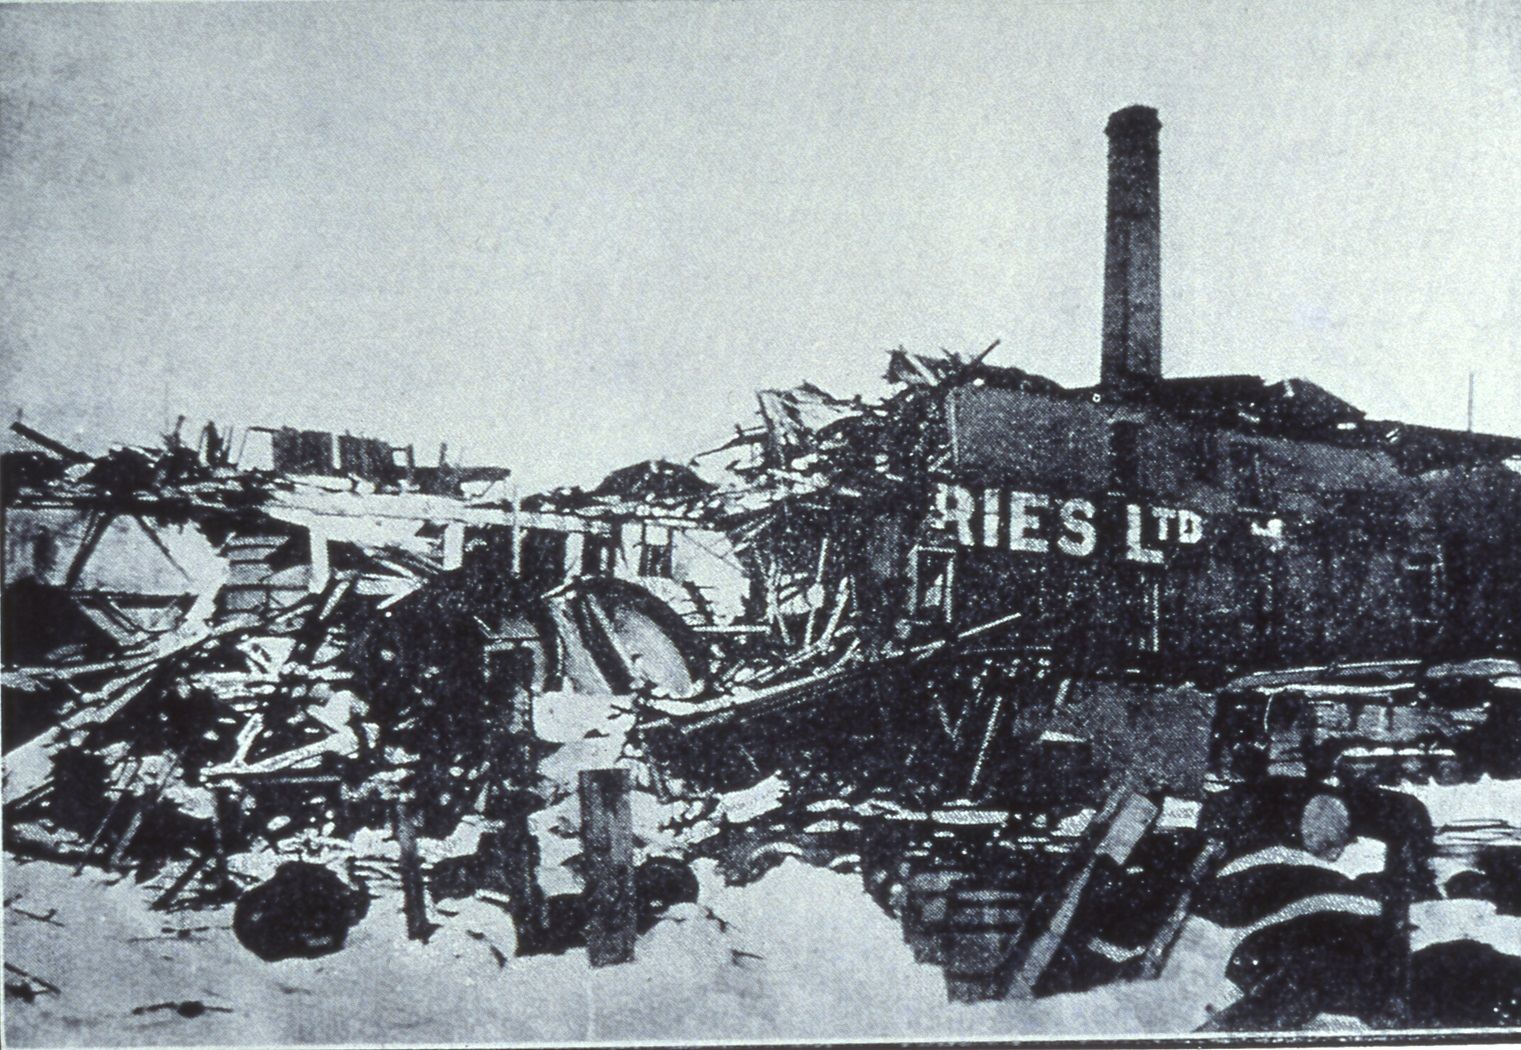 HALIFAX EXPLOSION A CENTURY LATER